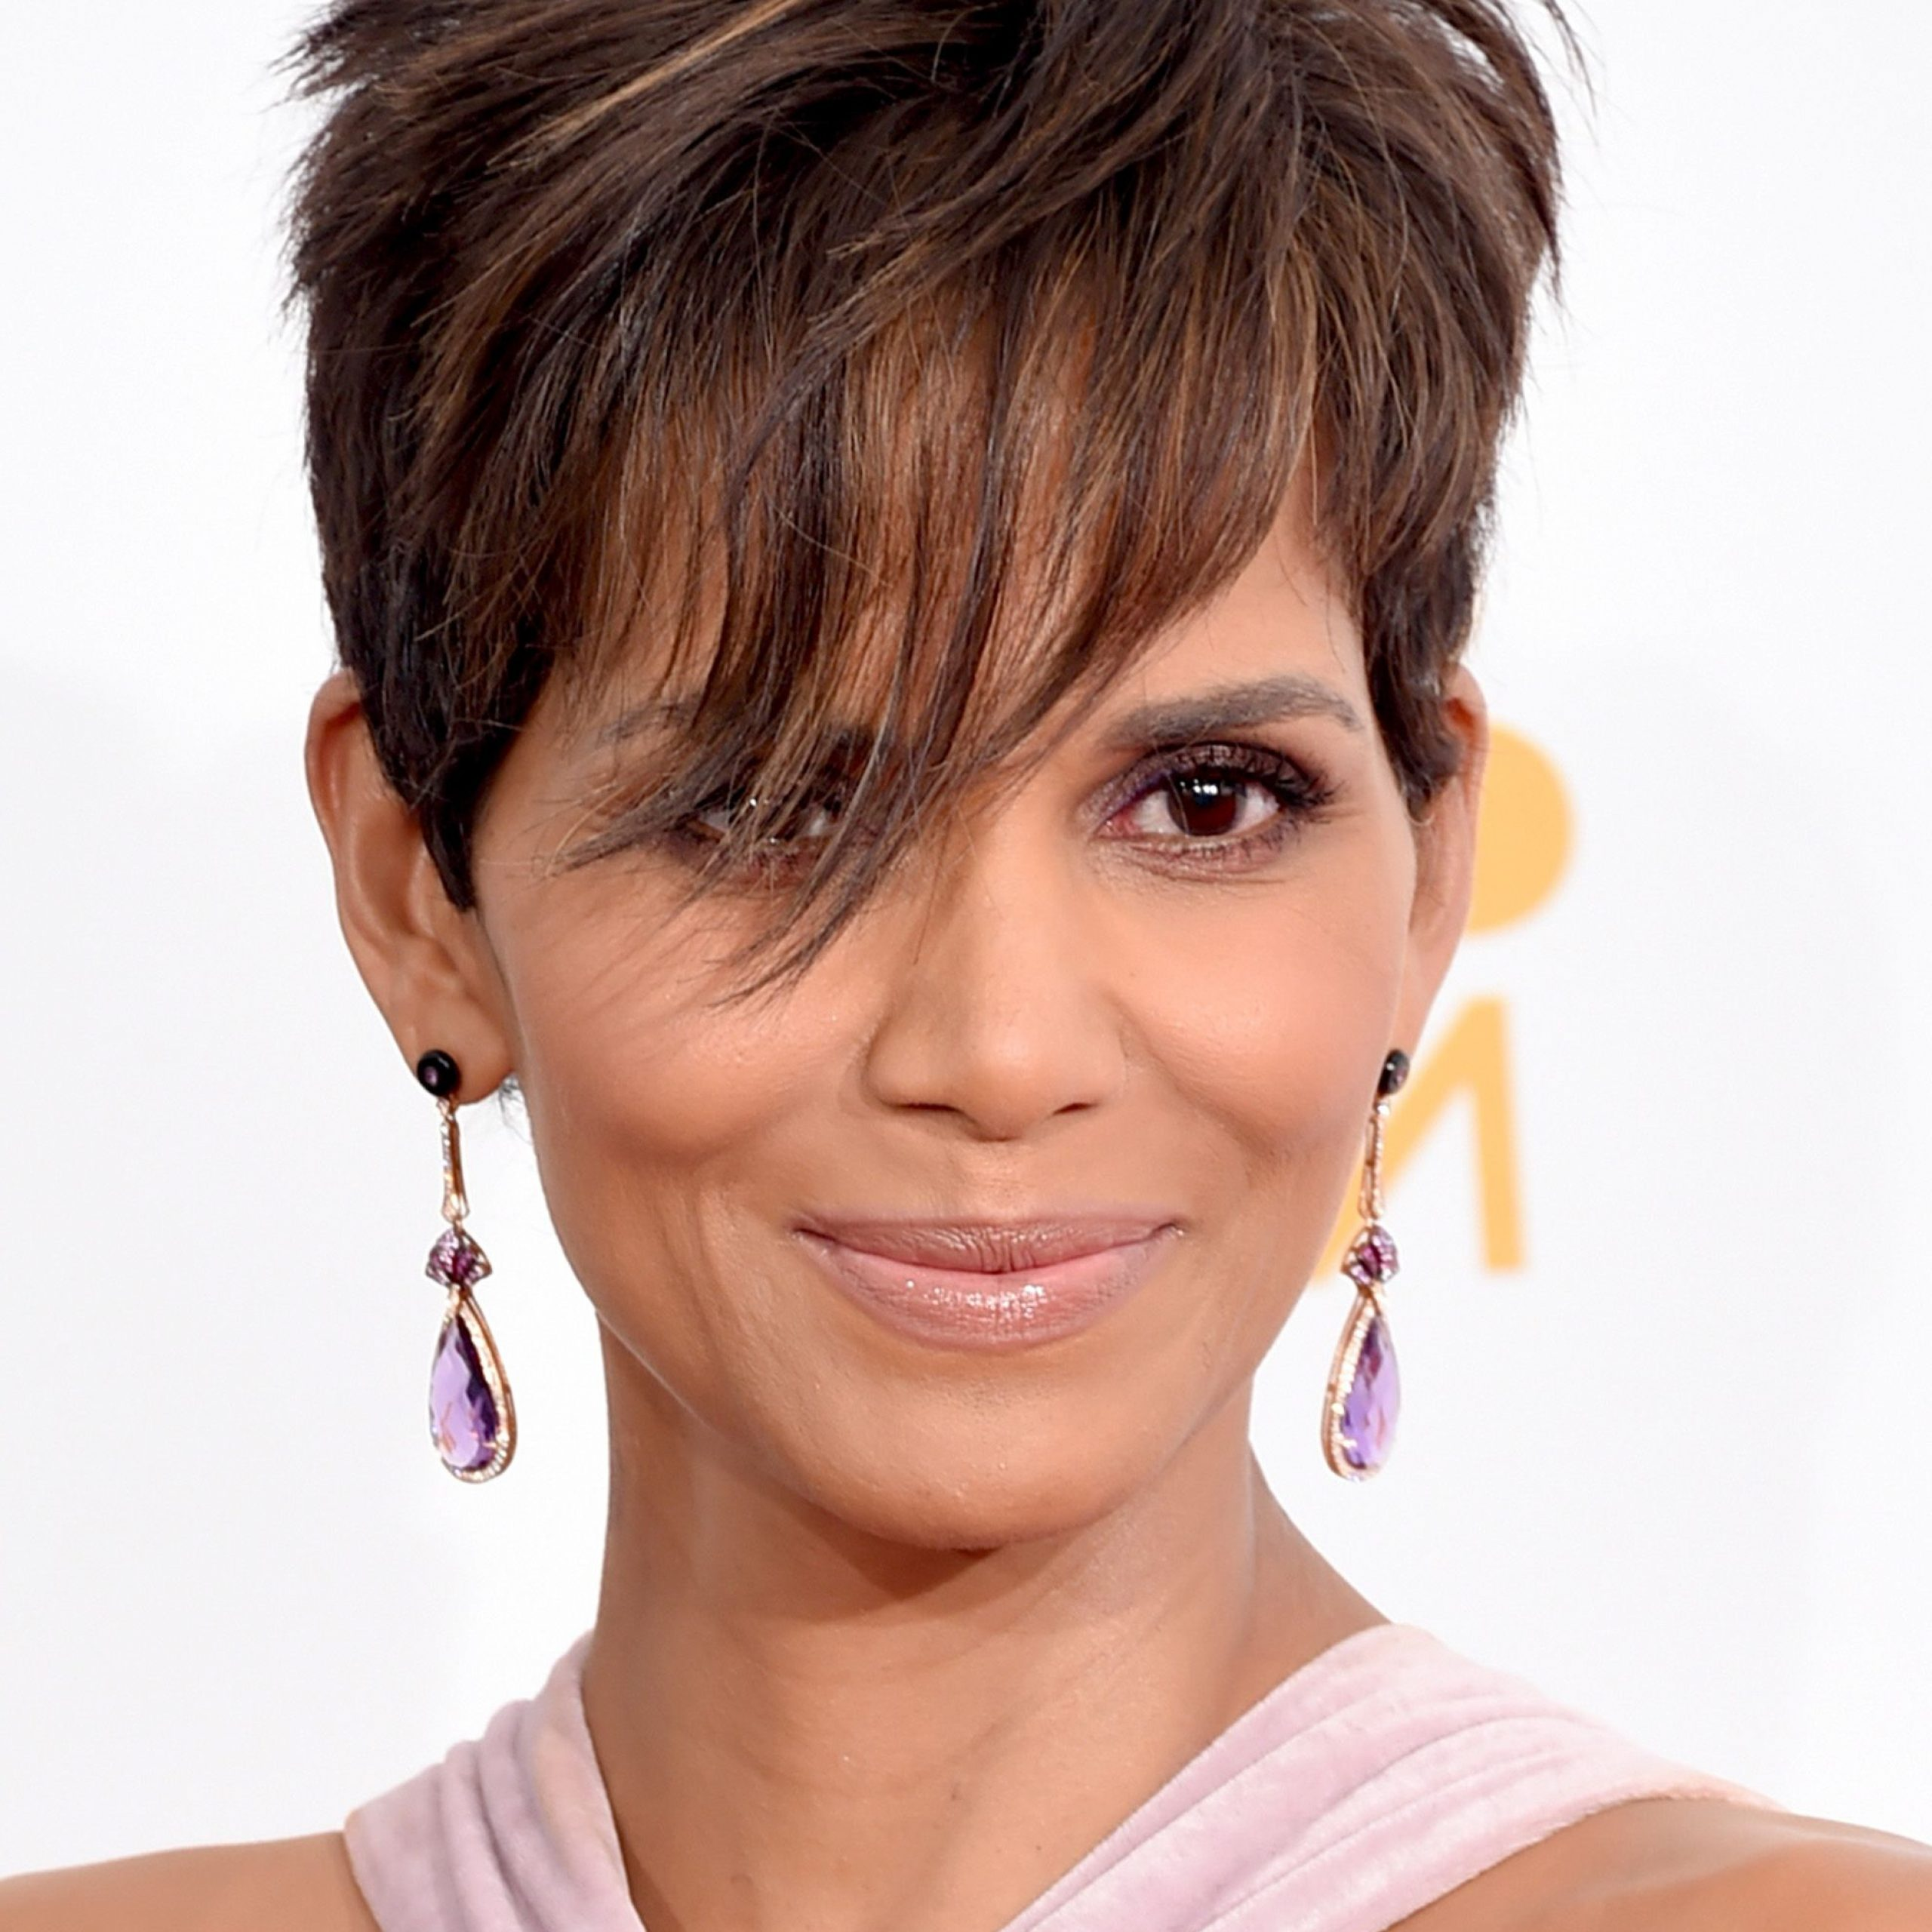 Most Recently Released Feathered Pixie Shag Haircuts With Highlights With Regard To 40 Best Short Pixie Cut Hairstyles 2019 – Cute Pixie (View 15 of 20)